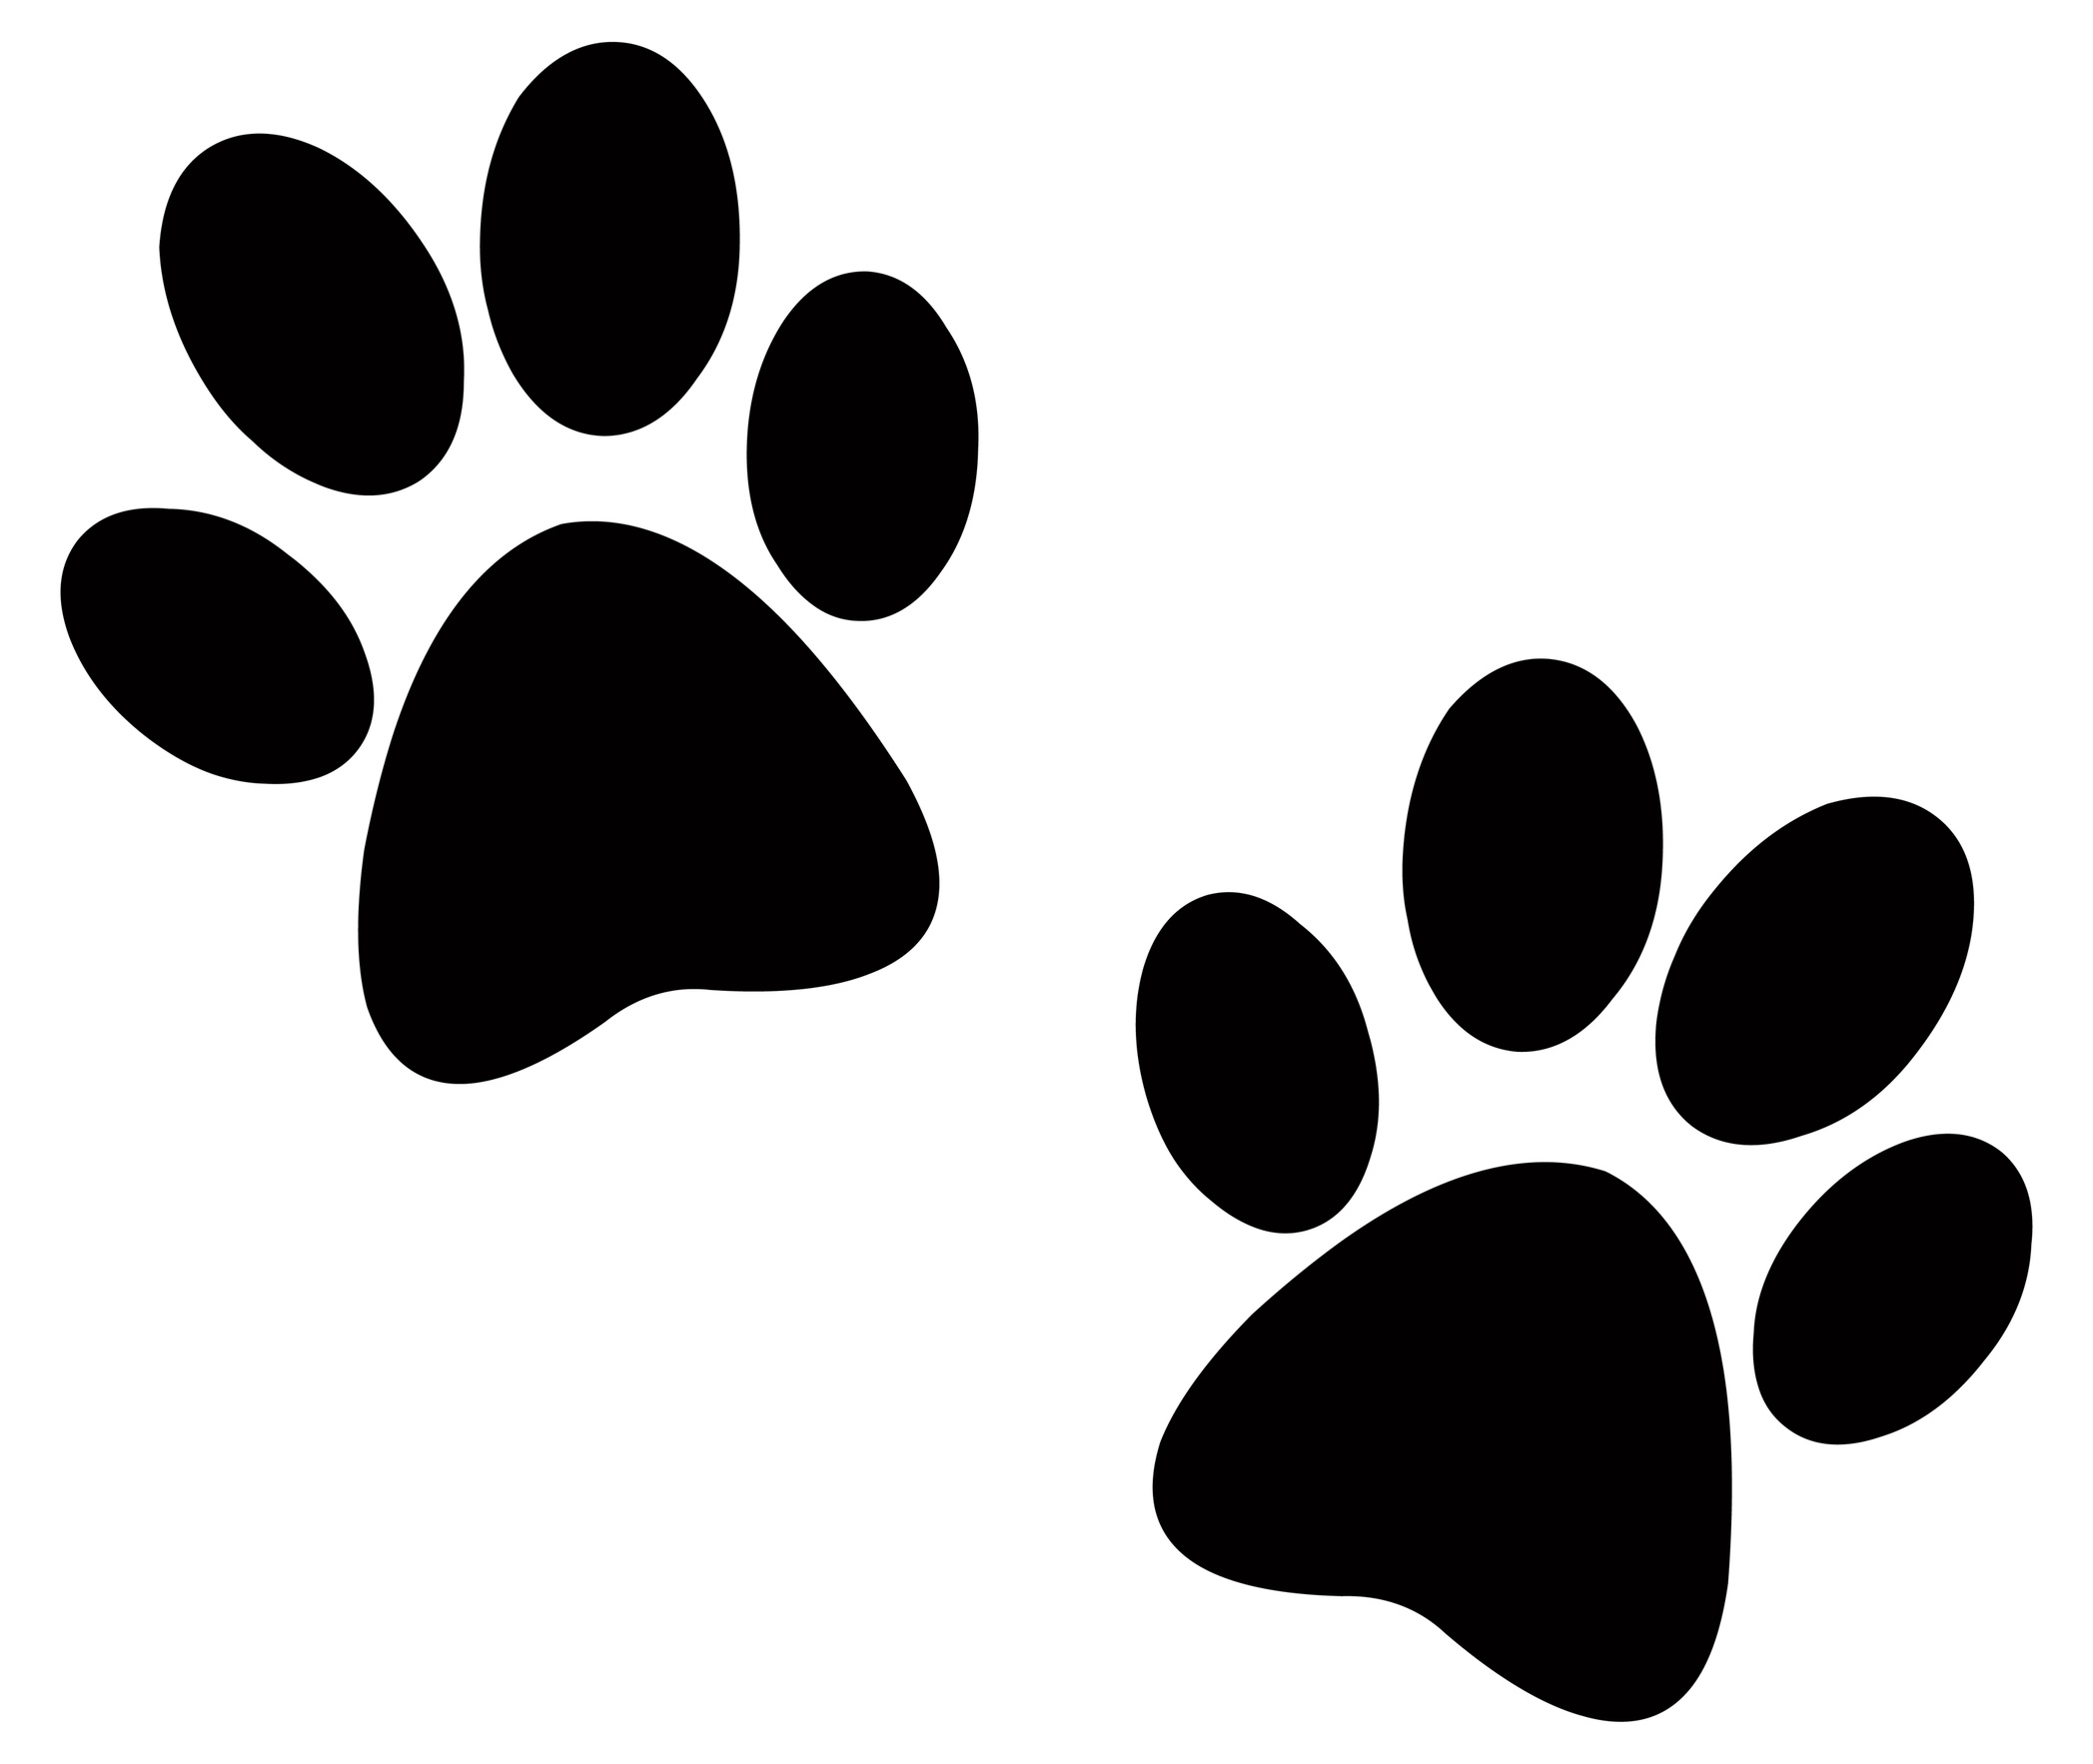 2095x1766 Paw Prints Paw Print Black And White Clipart Kid 3